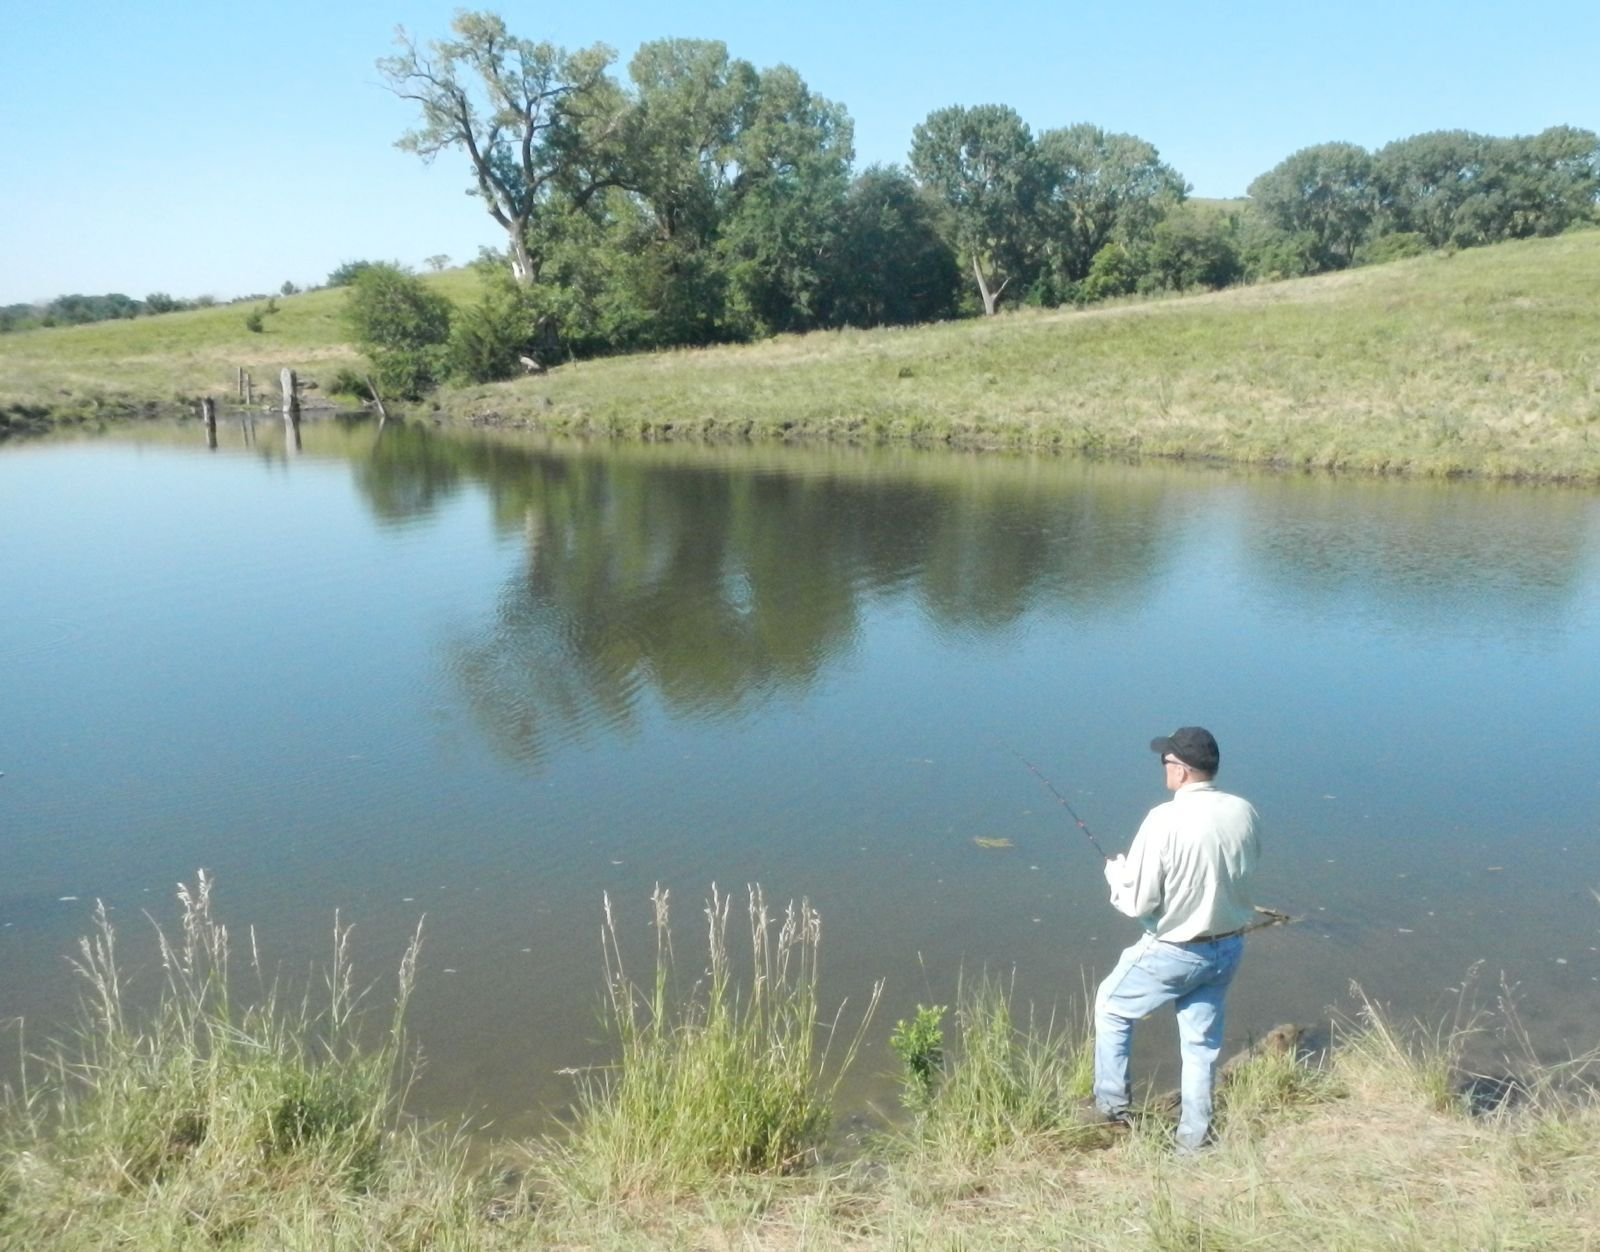 MYHRE: Farm ponds offer bass, bluegill action | Outdoors ...